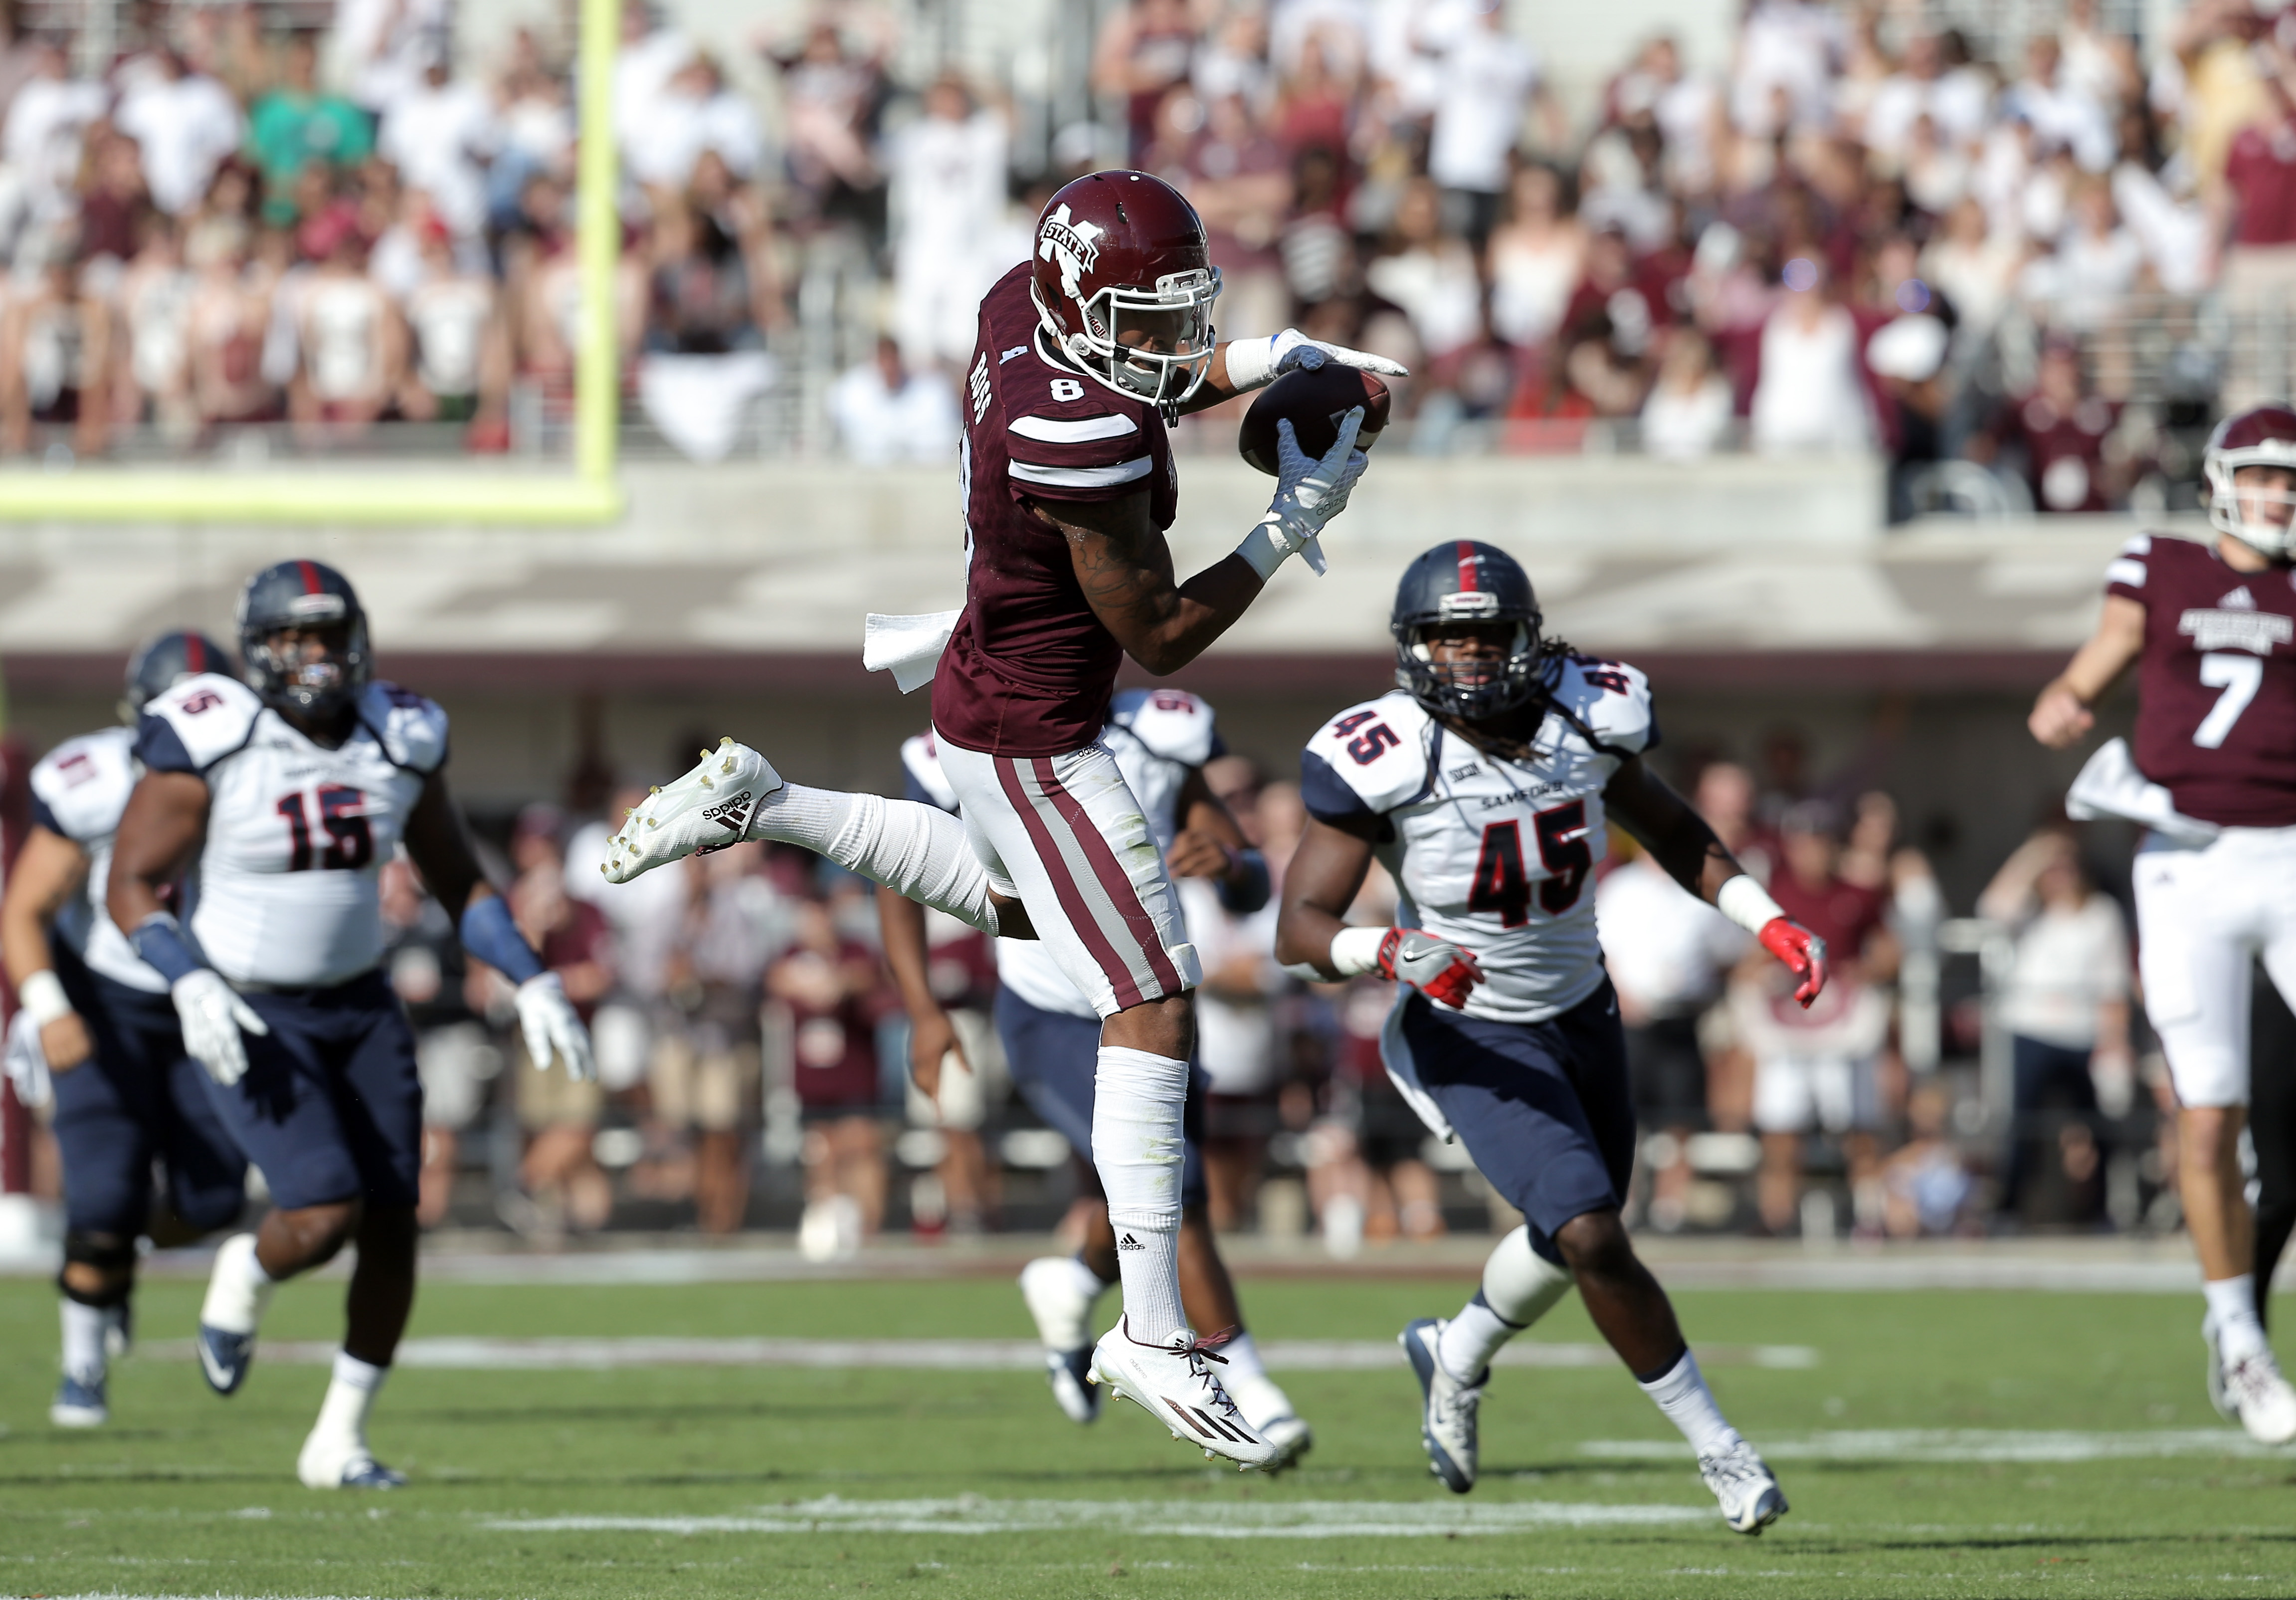 9640212-ncaa-football-samford-at-mississippi-state